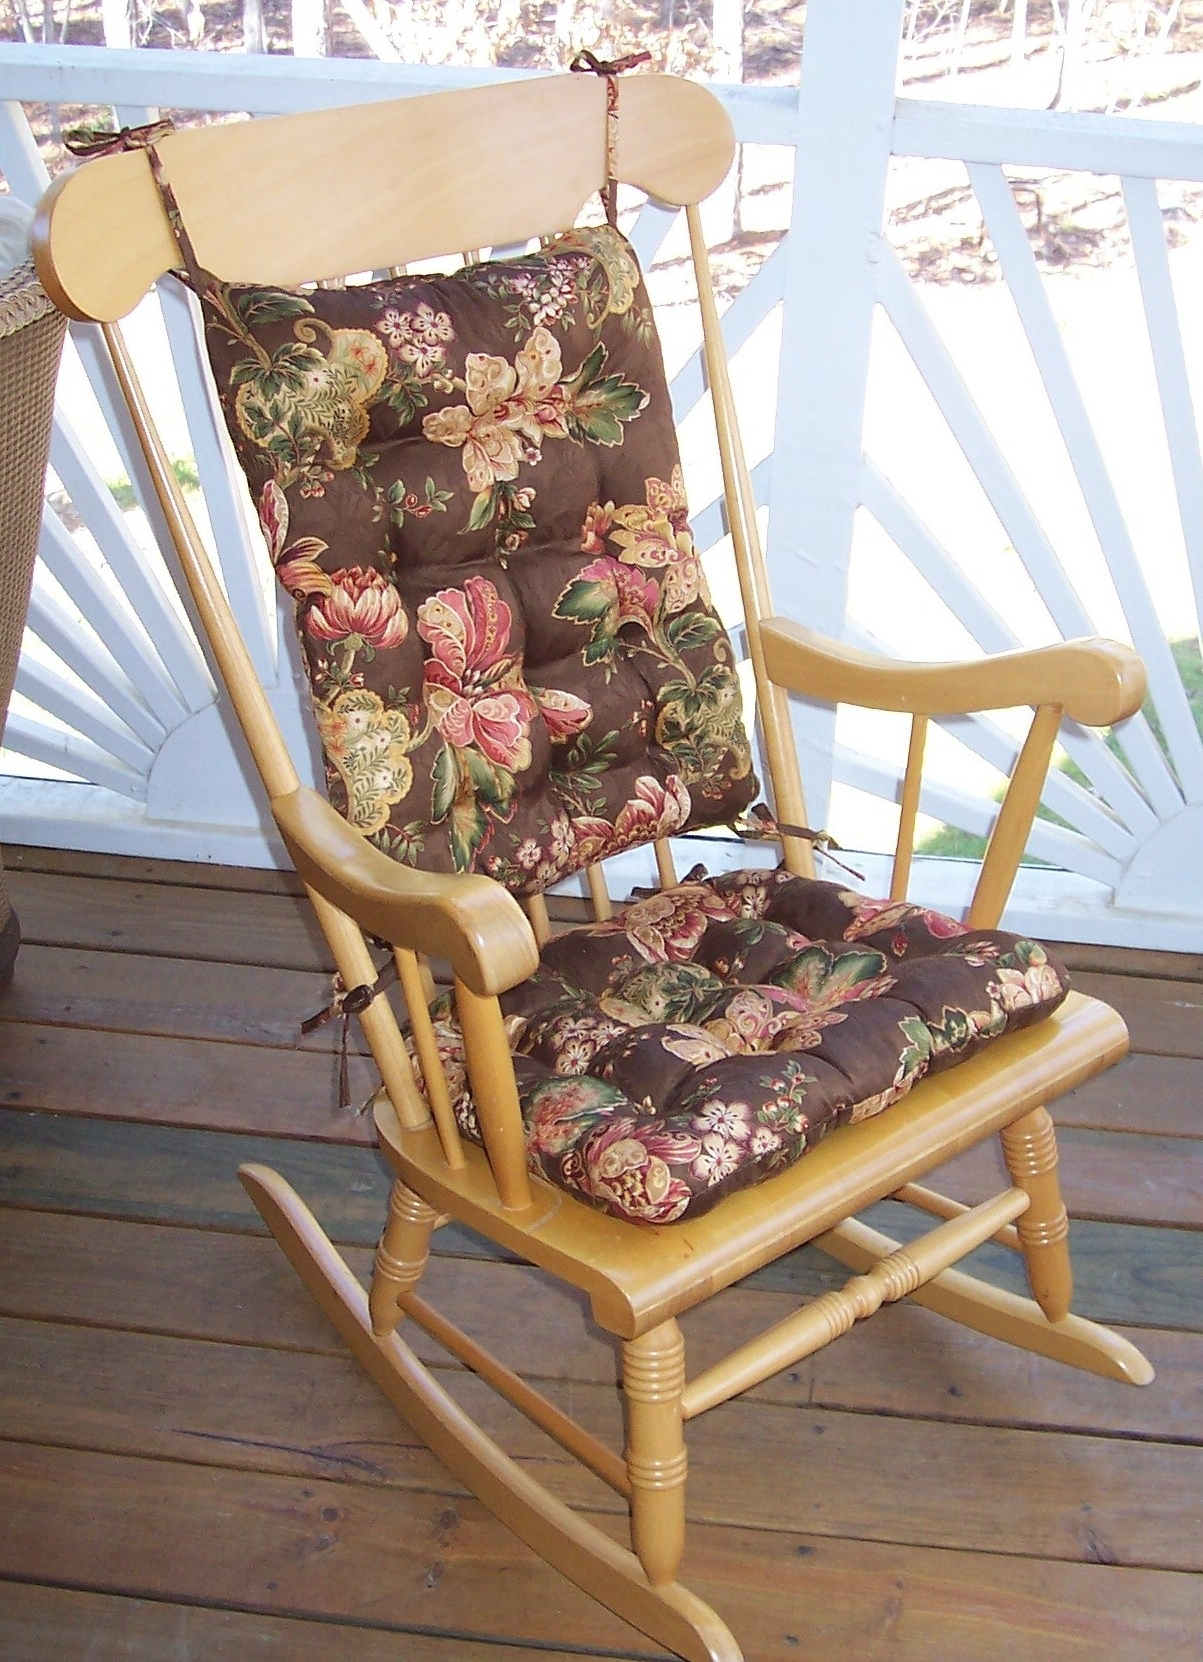 Rockingair Cushion Replacement Wicker Cushions Lillberg Covers Sets Pertaining To Recent Rocking Chairs With Cushions (View 11 of 15)